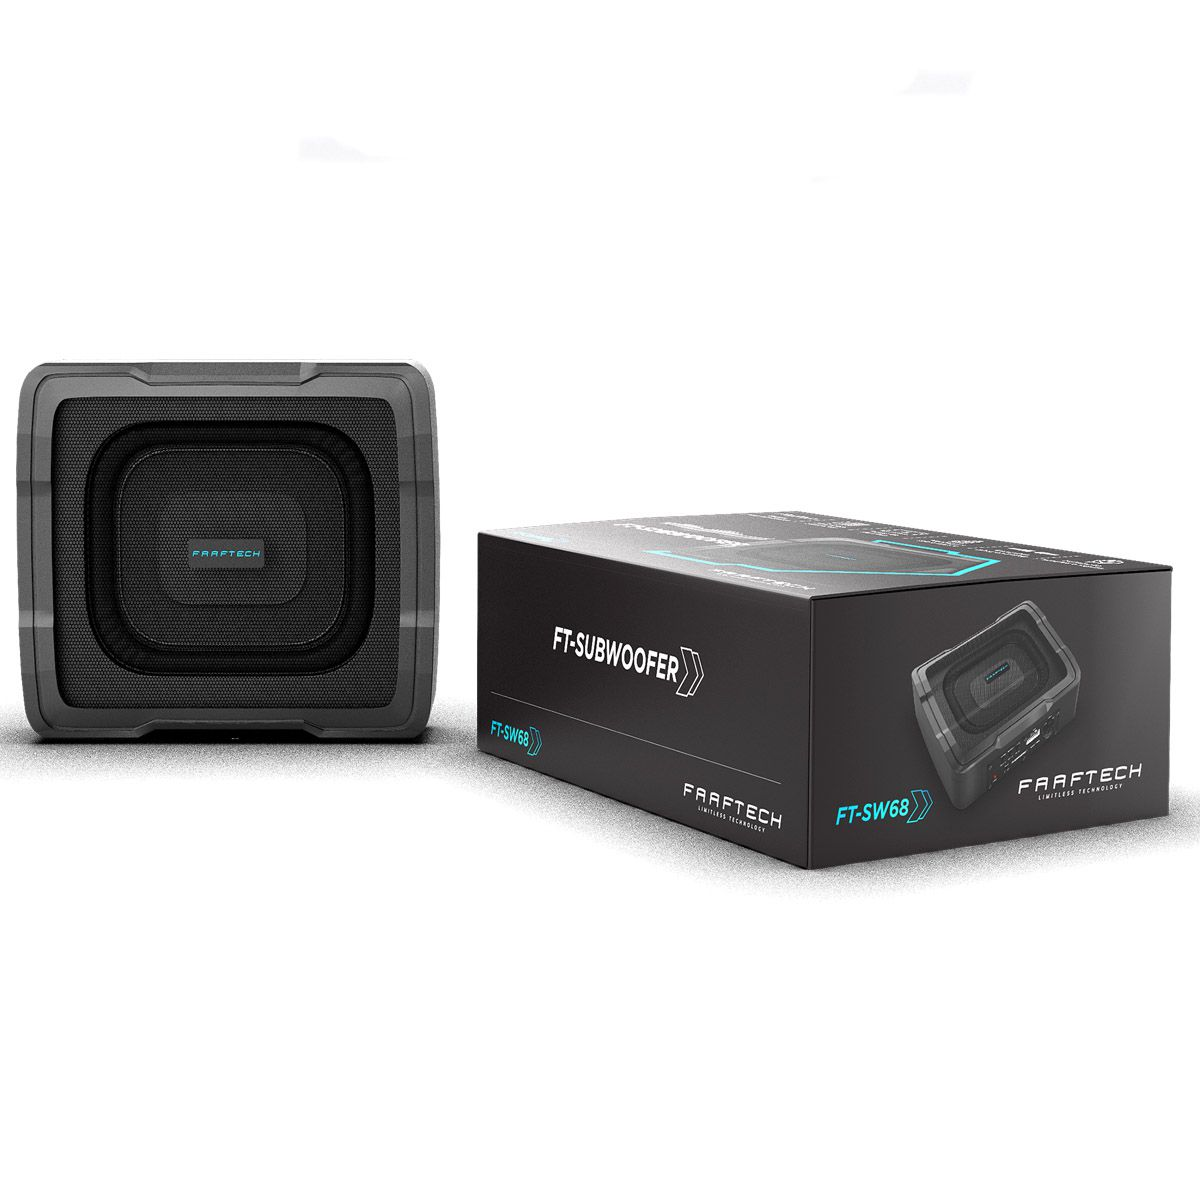 Subwoofer Slim Ativo 100wrms Universal - FT-SW68